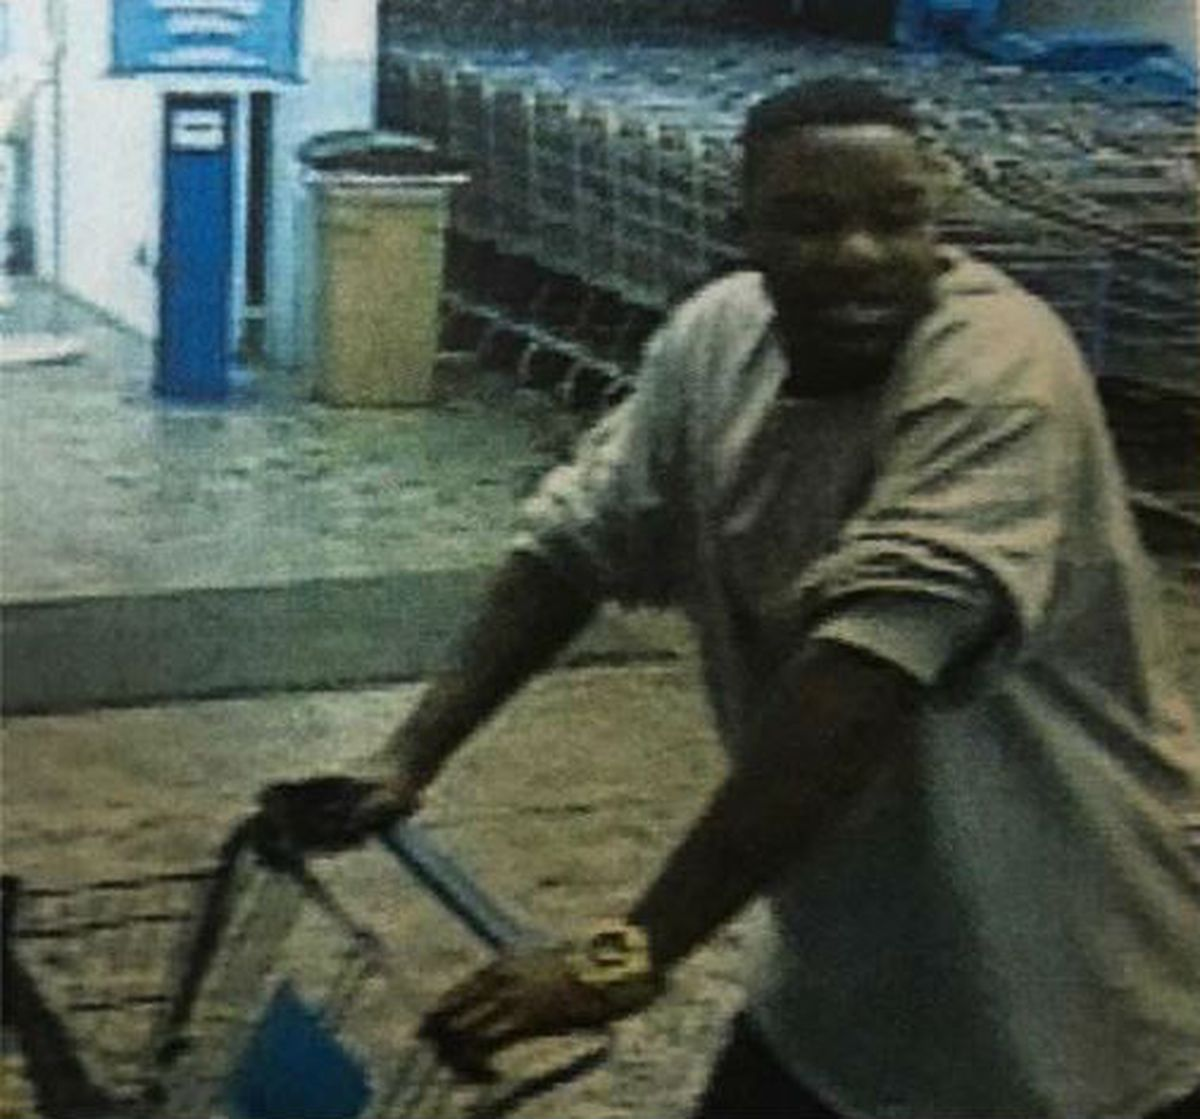 Southport police looking for suspect in Walmart thefts https://t.co/G9YrtBE6Qr